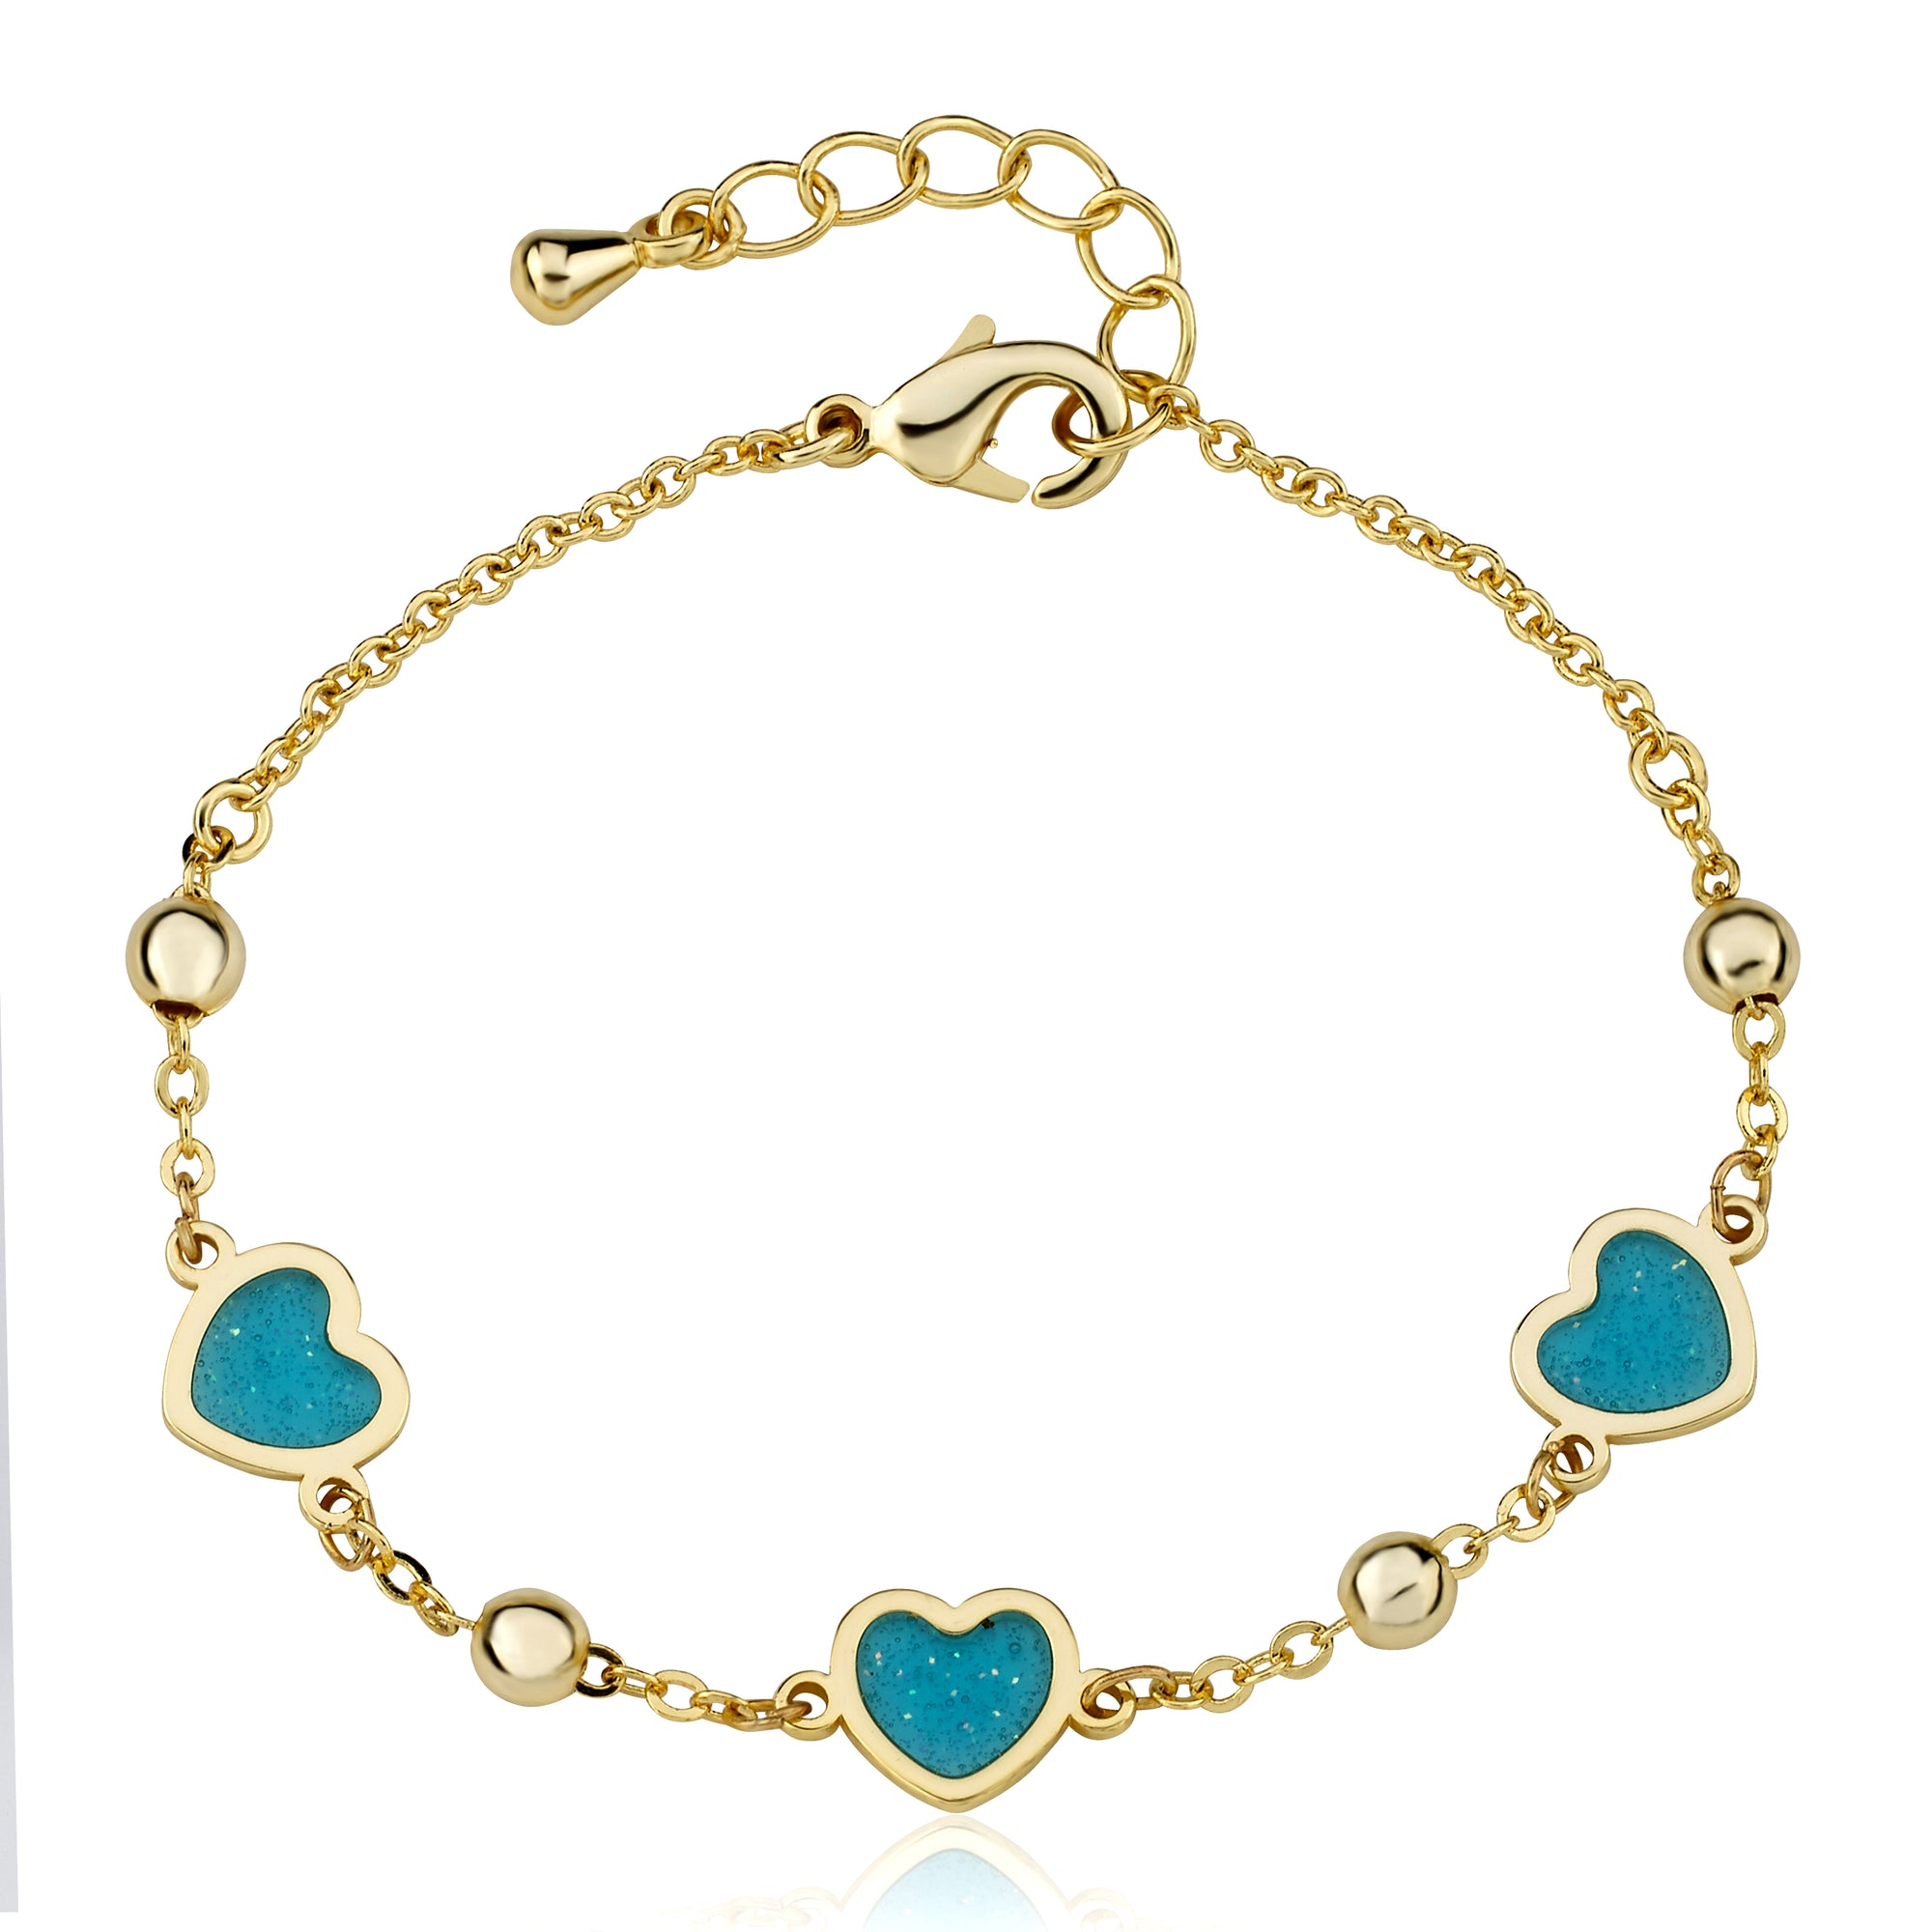 "Twin Star LMTS 14k Gold Plated Aqua Transparent Triple Heart Chain Bracelet -4.5"" w/ Extention"